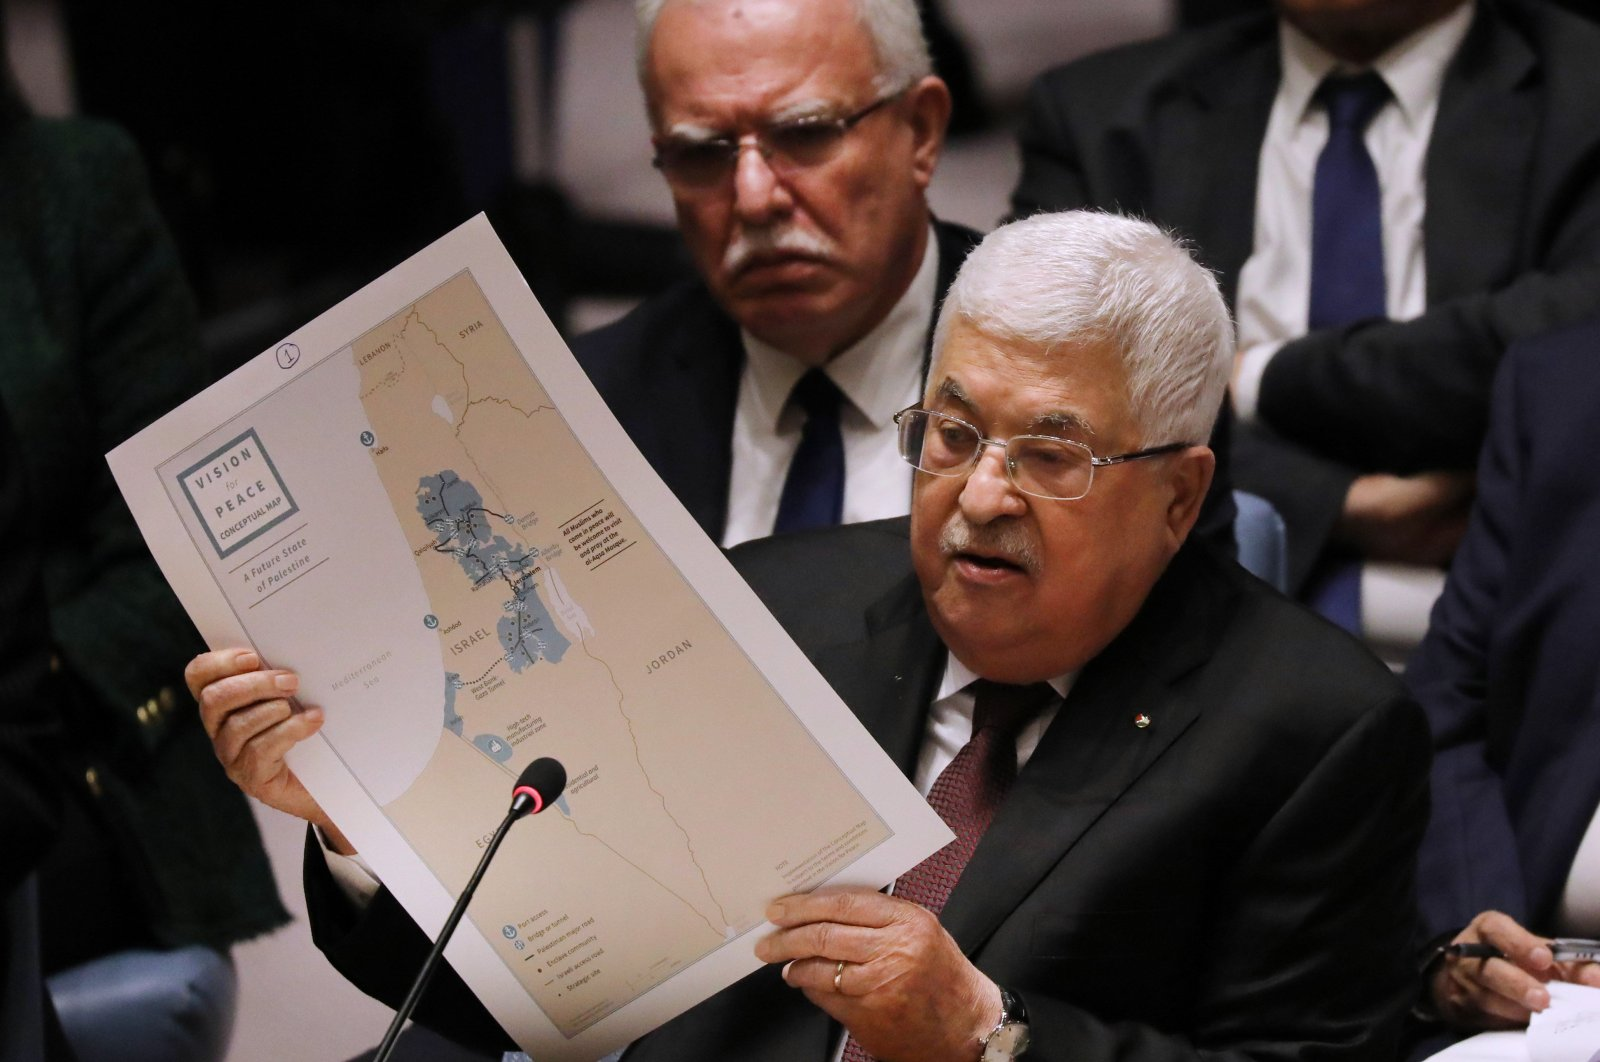 Palestinian President Mahmoud Abbas holds up a Vision for Peace map while speaking at the United Nations (UN) Security Council in New York City, New York, U.S., Feb.11, 2020. (AFP Photo)